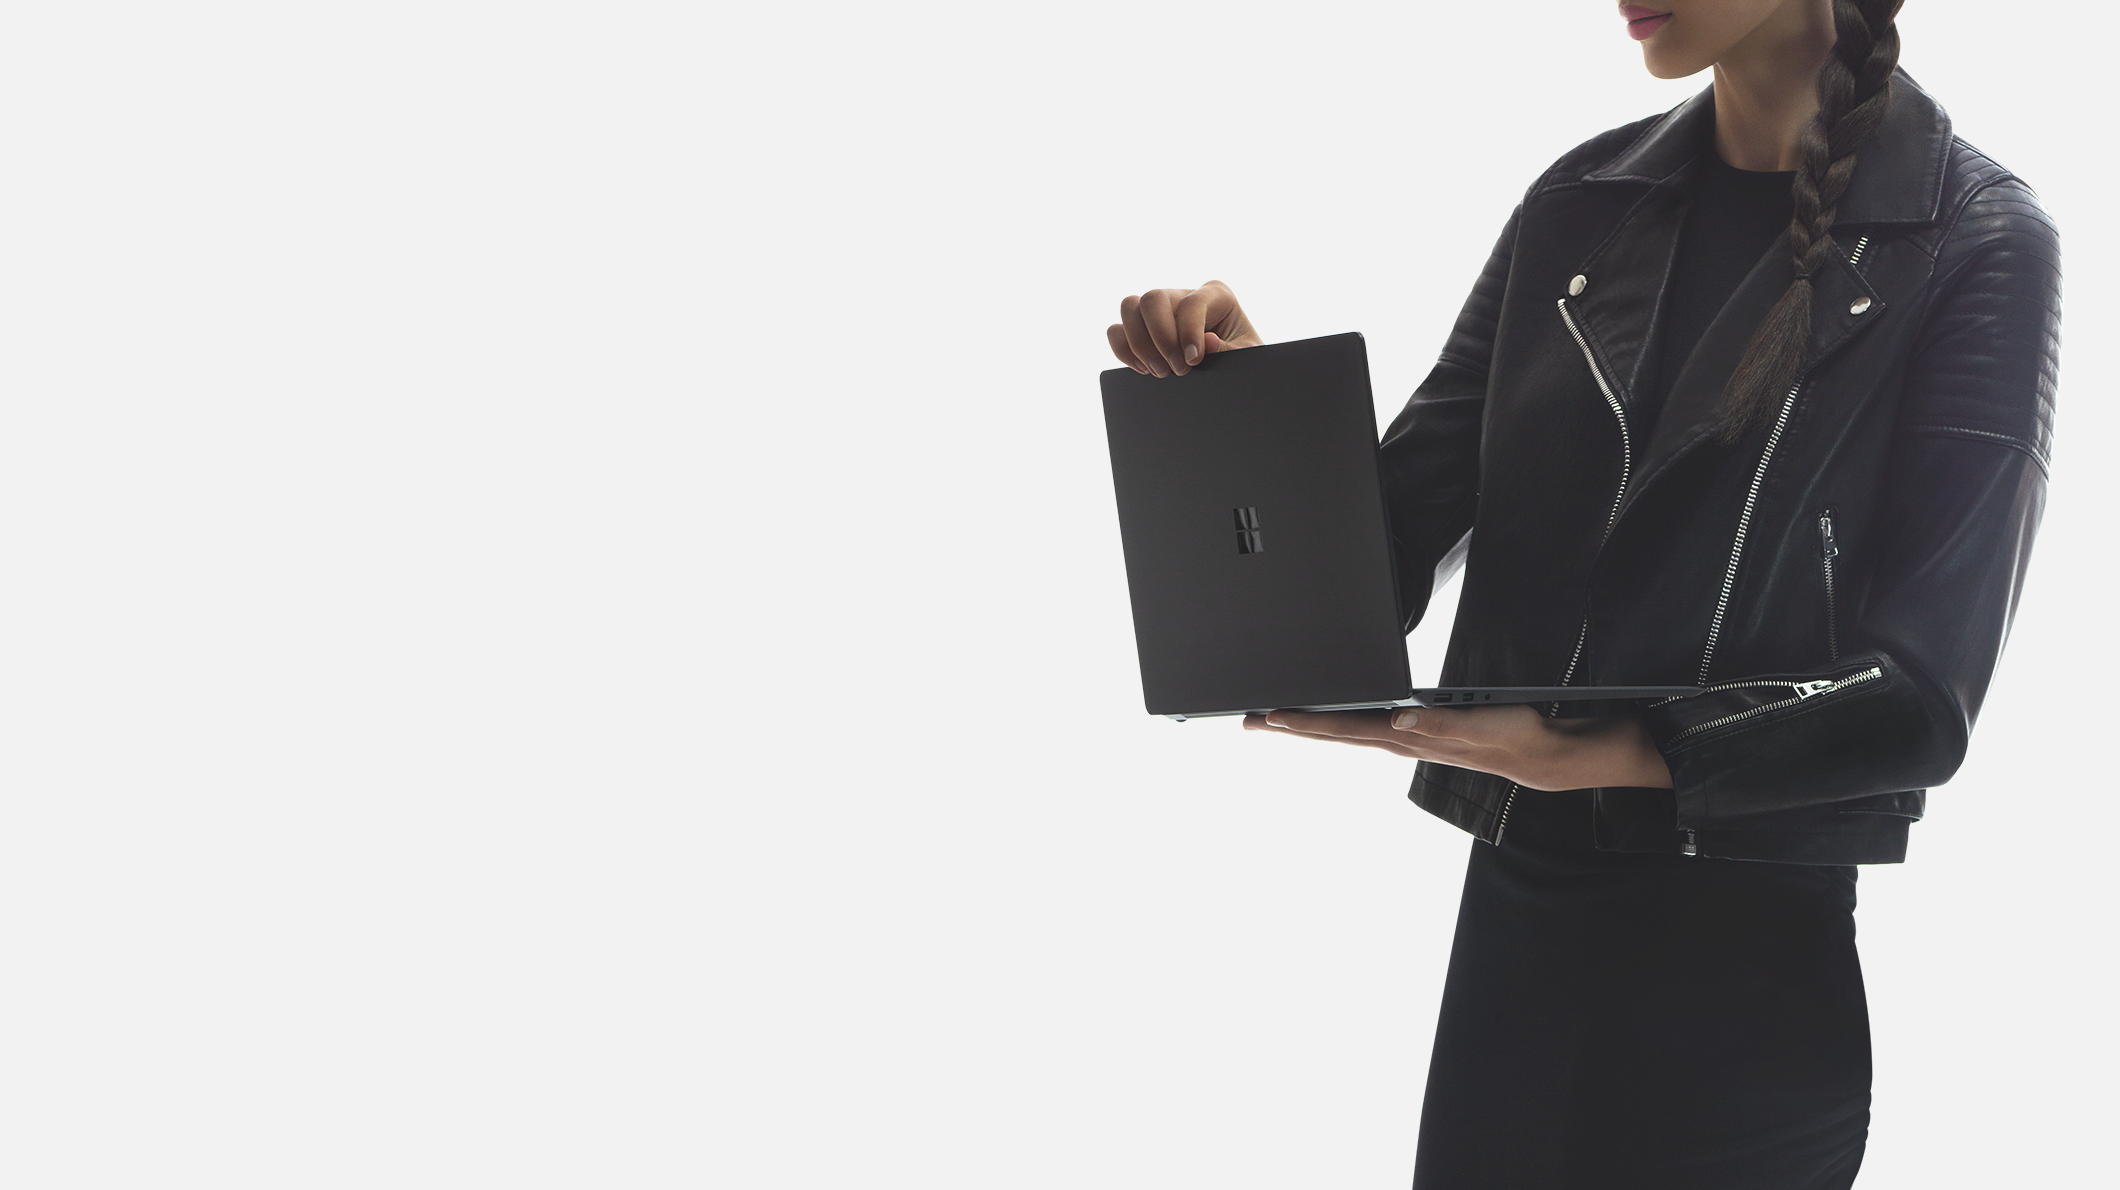 A woman holds a Surface Laptop 2 Store